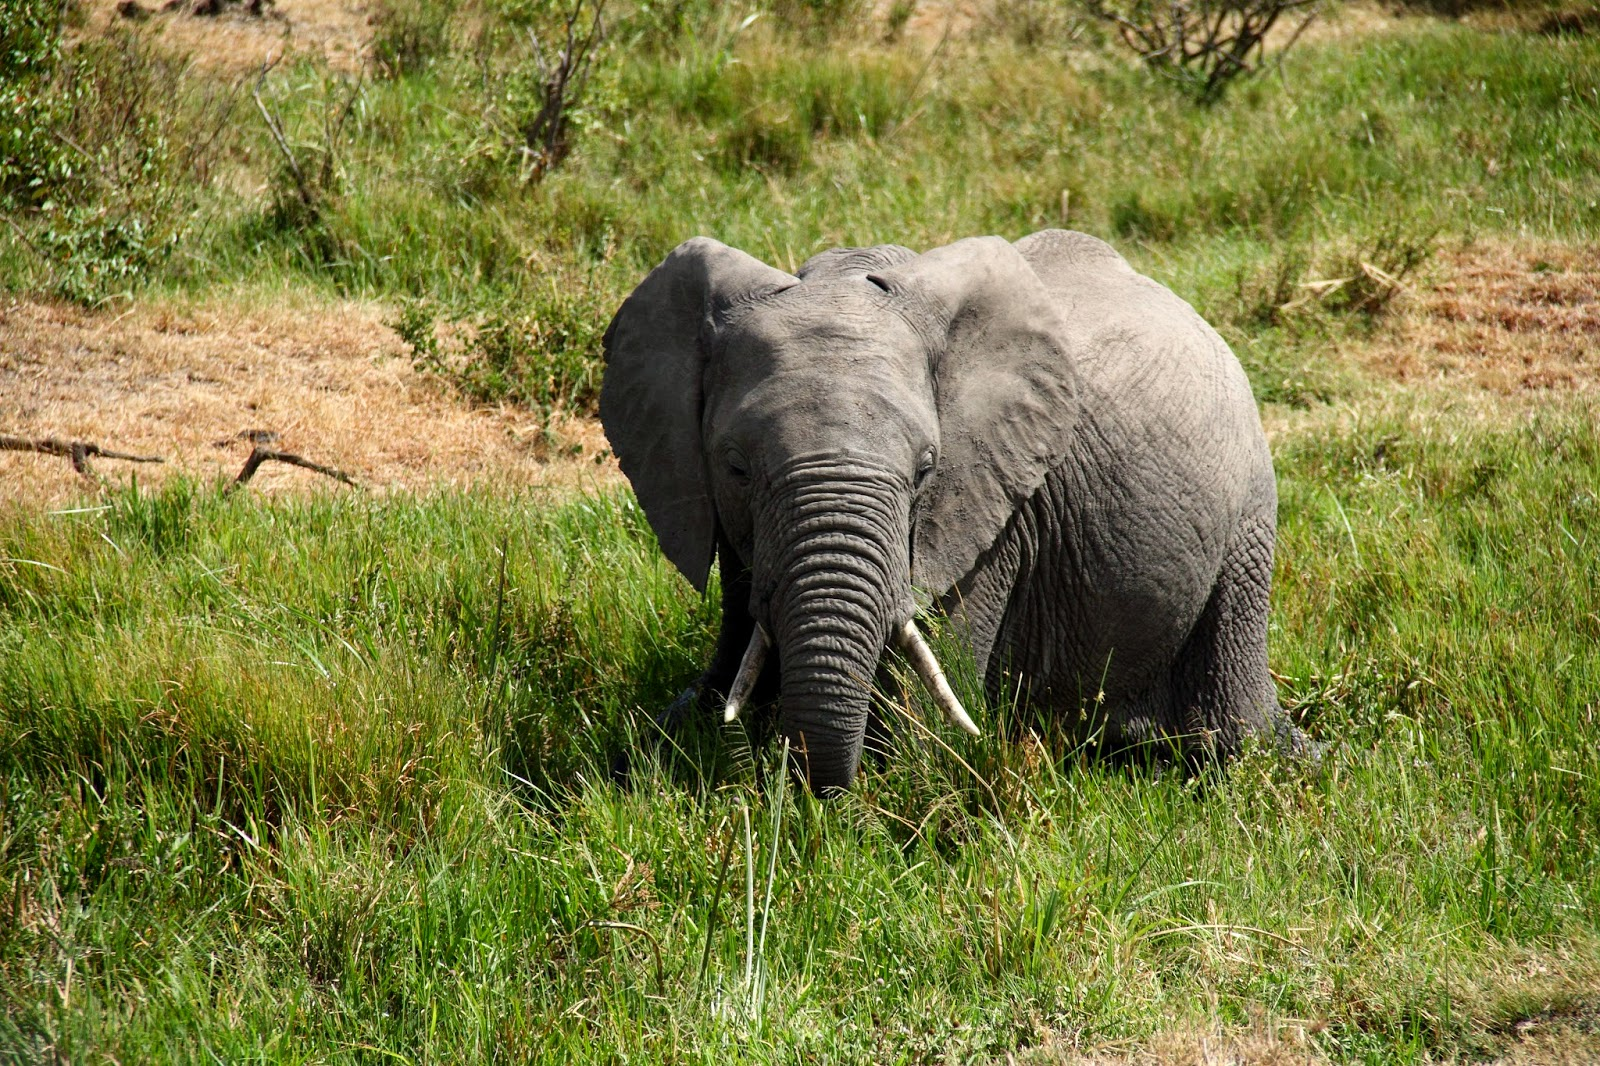 A playful tusker at Masai Mara